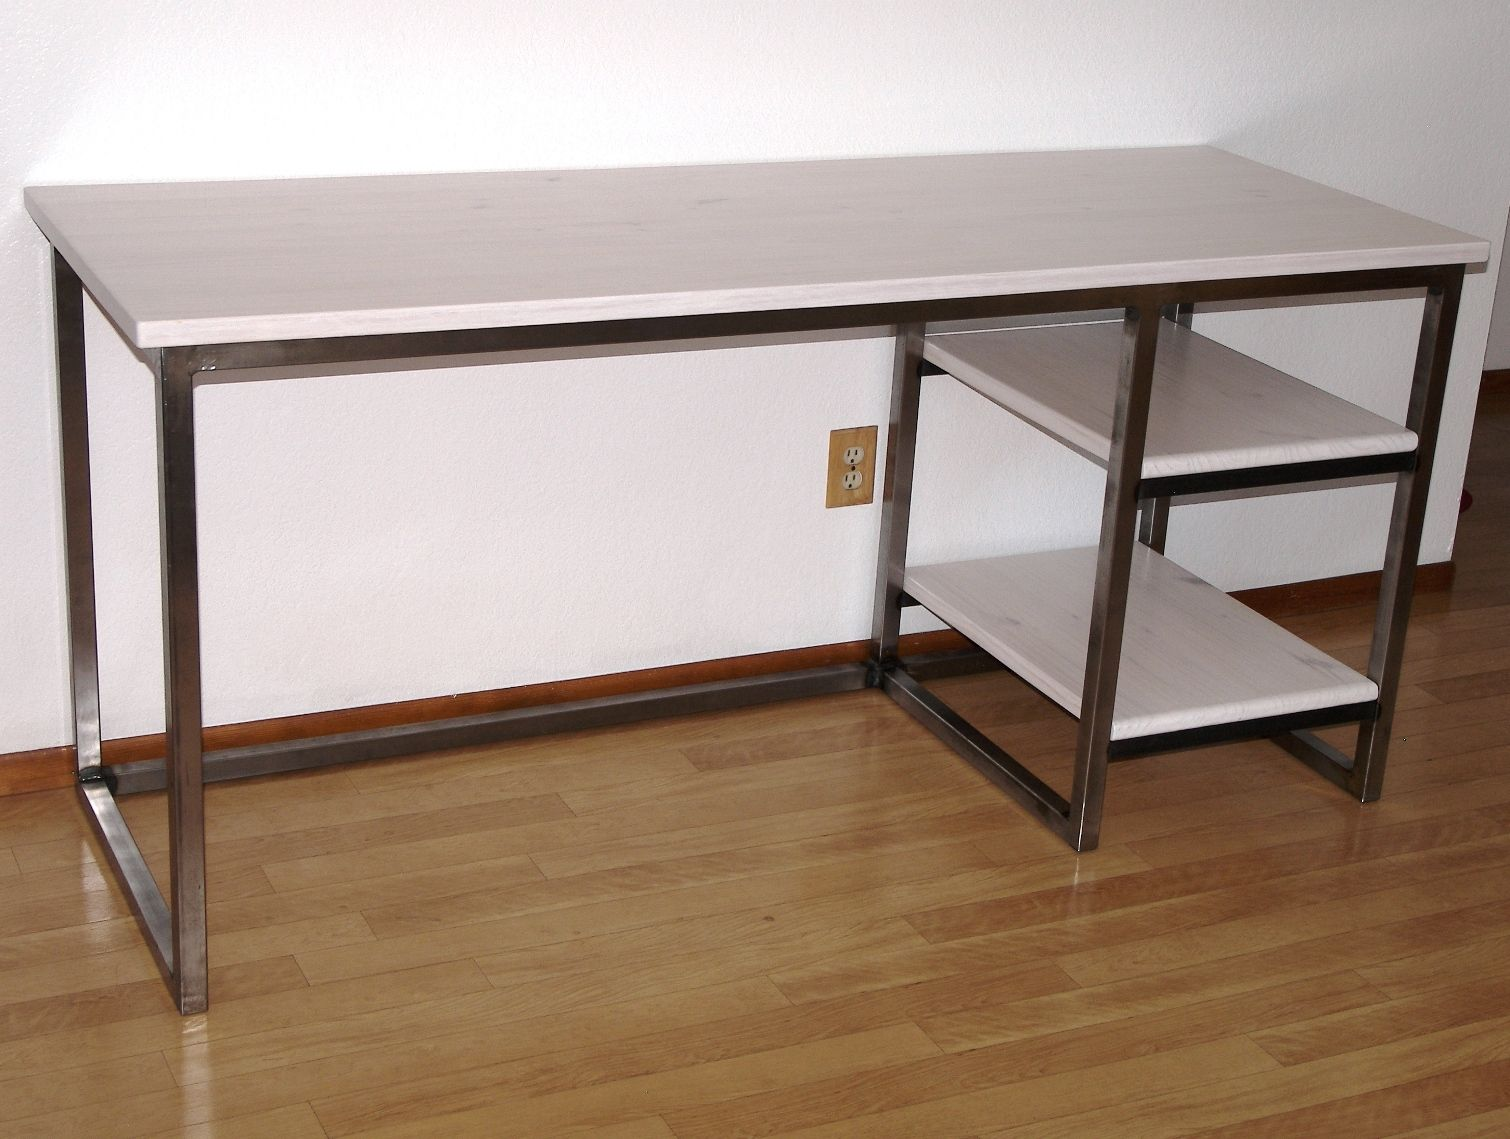 Custom Made Modern Urban Desk Wood Metal Office With Shelves Work